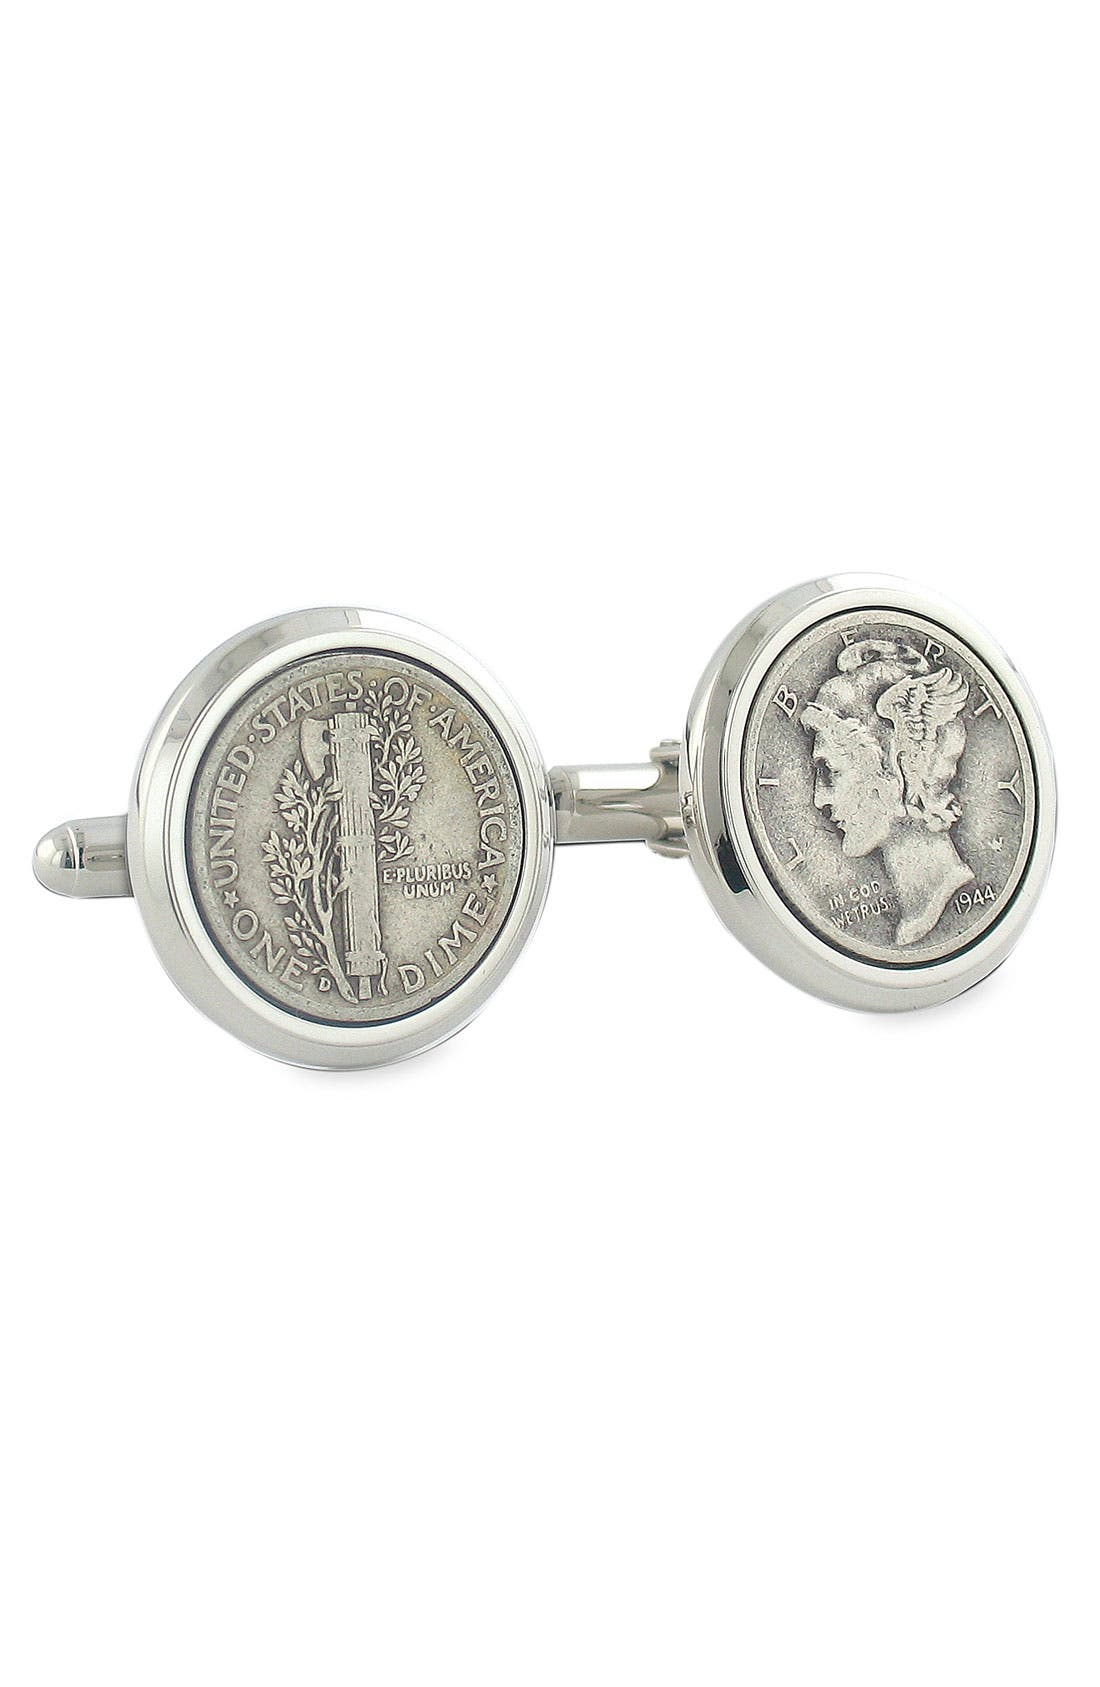 Main Image - David Donahue Mercury Dime Cuff Links